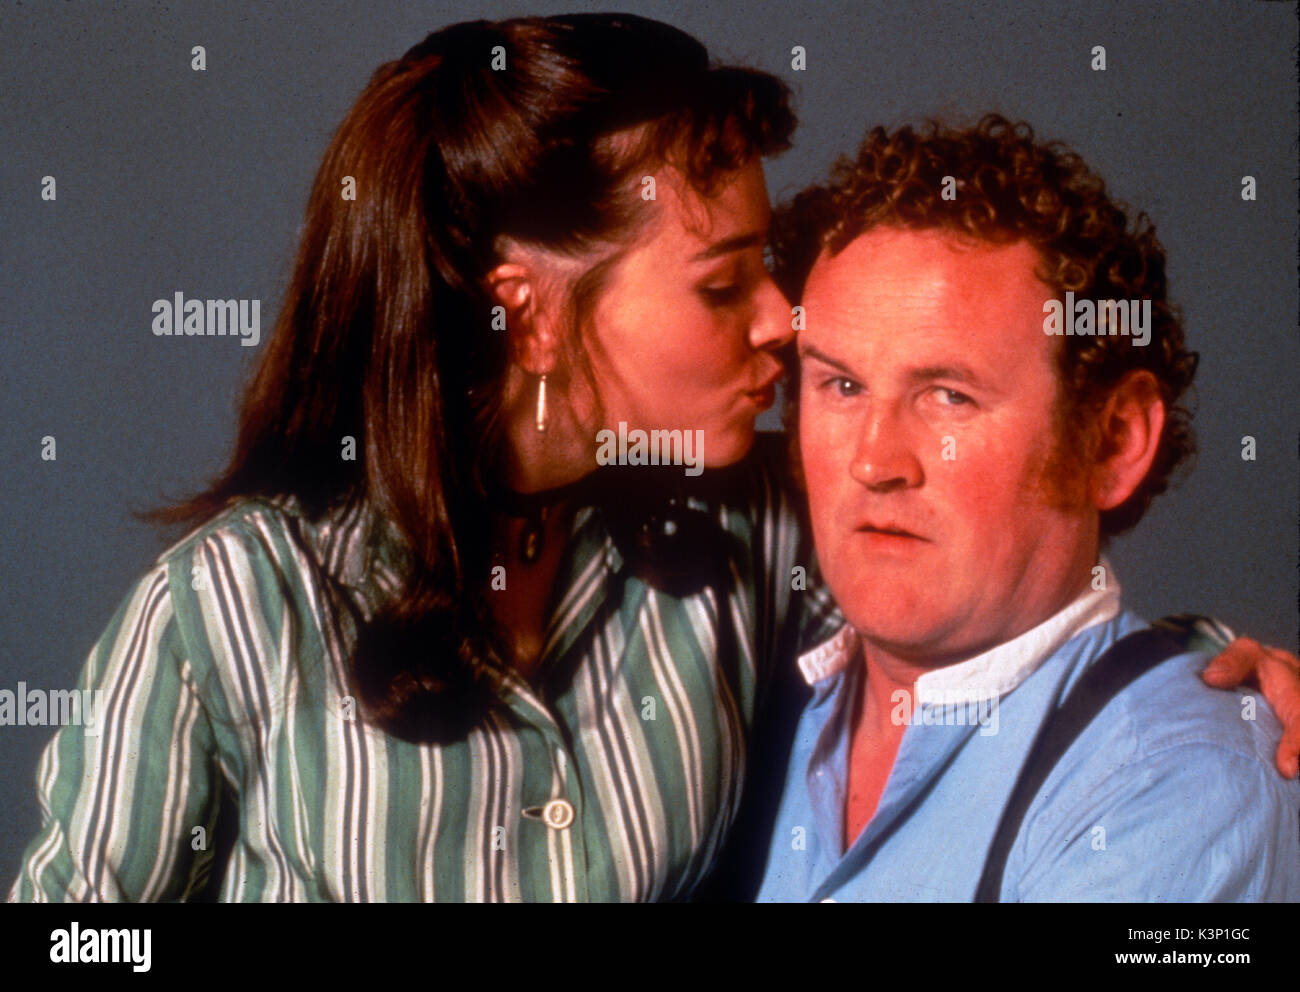 Taras Küche Bonn Colm Meaney Stock Photos Colm Meaney Stock Images Page 2 Alamy